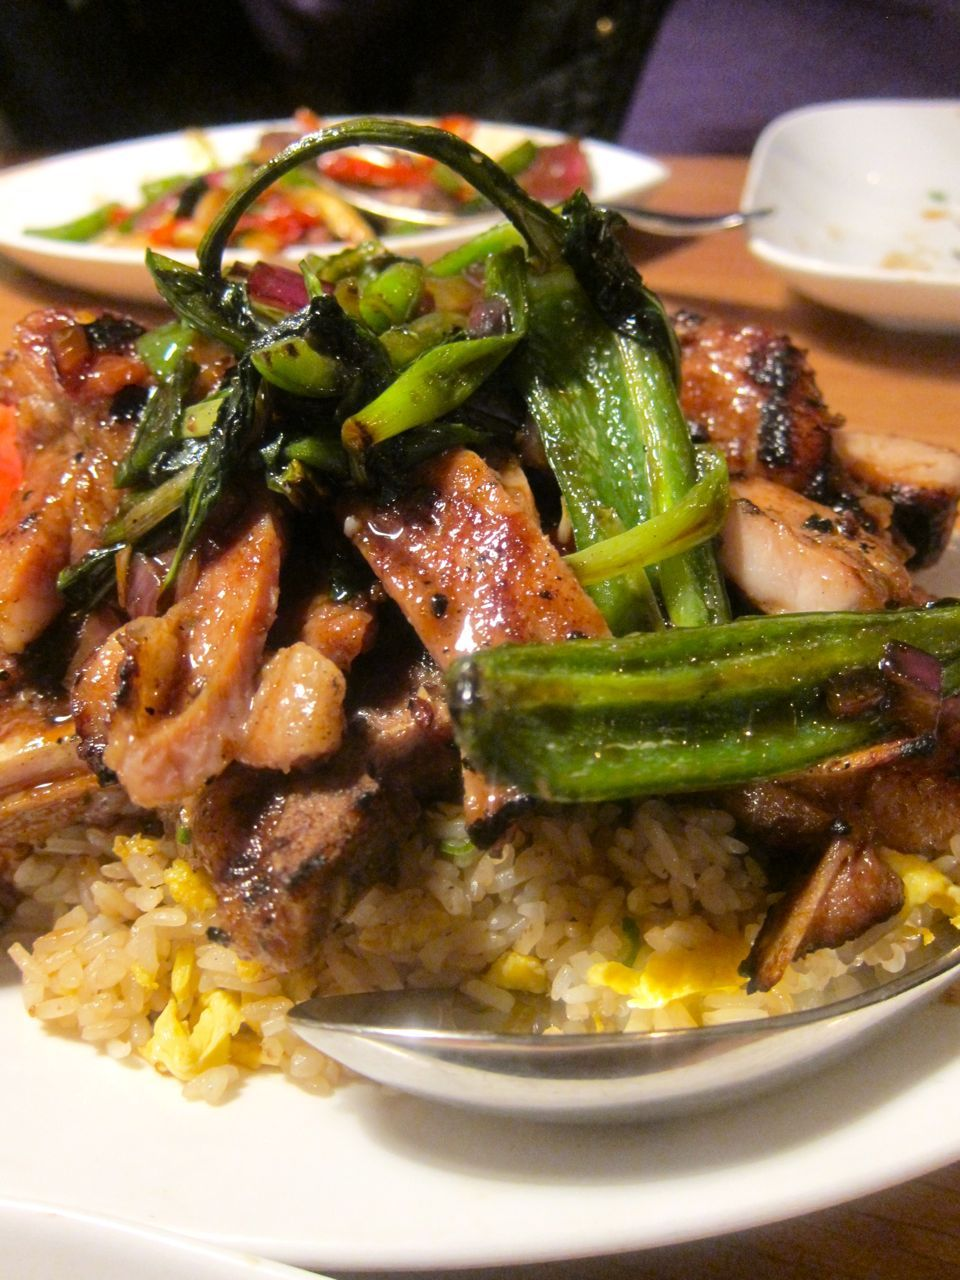 A Red Farm zealot singles out the lemongrass grilled pork chops as uptown's triumph.